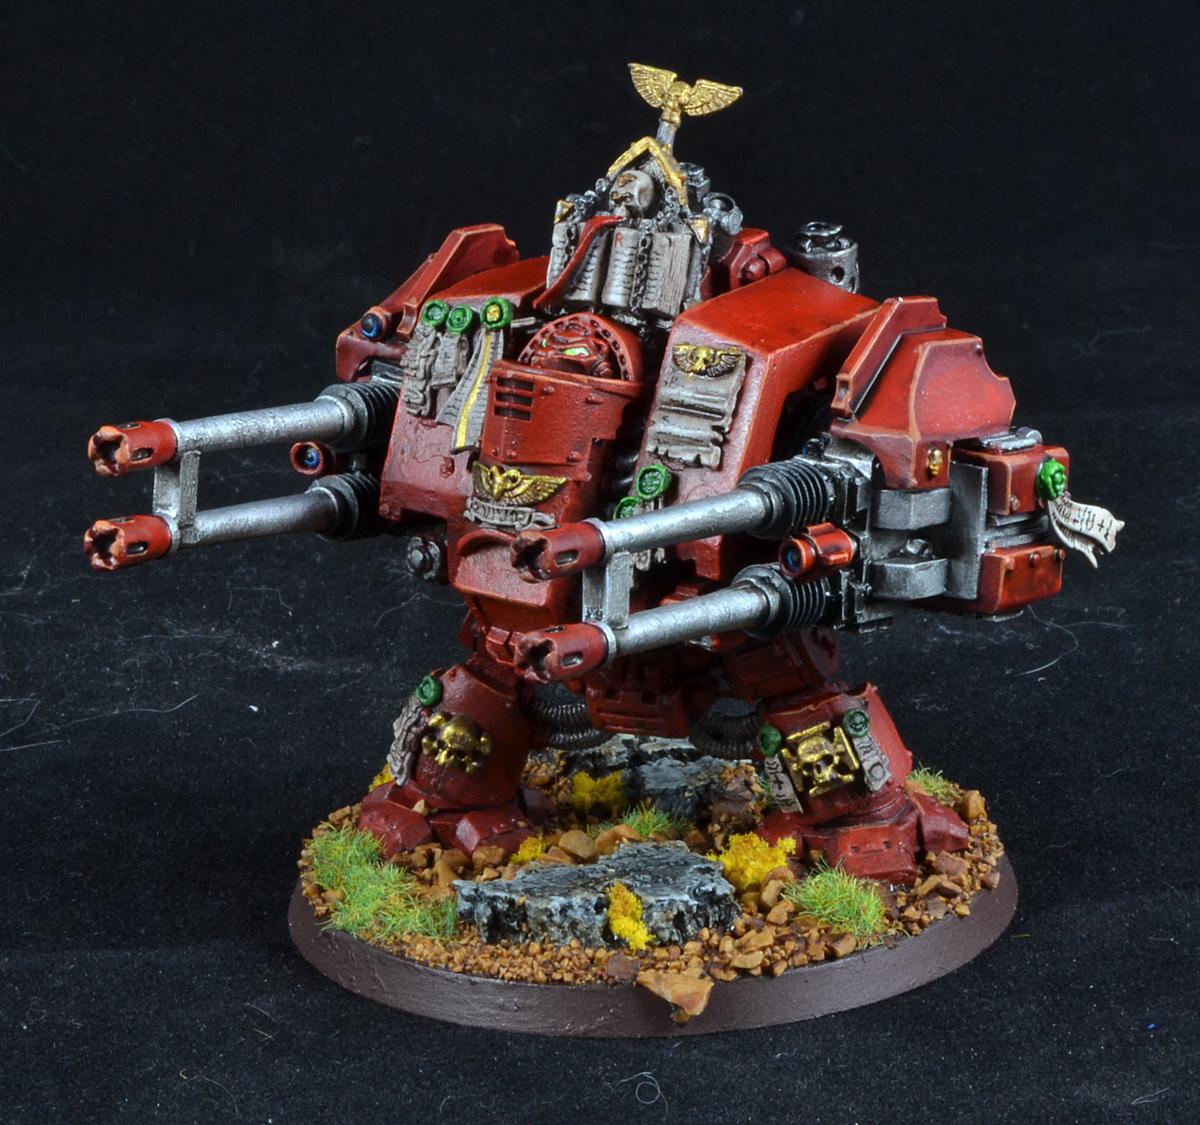 Dreadnought, Exorcists, Grey Knights, Rifleman, Space Marines, Warhammer 40,000